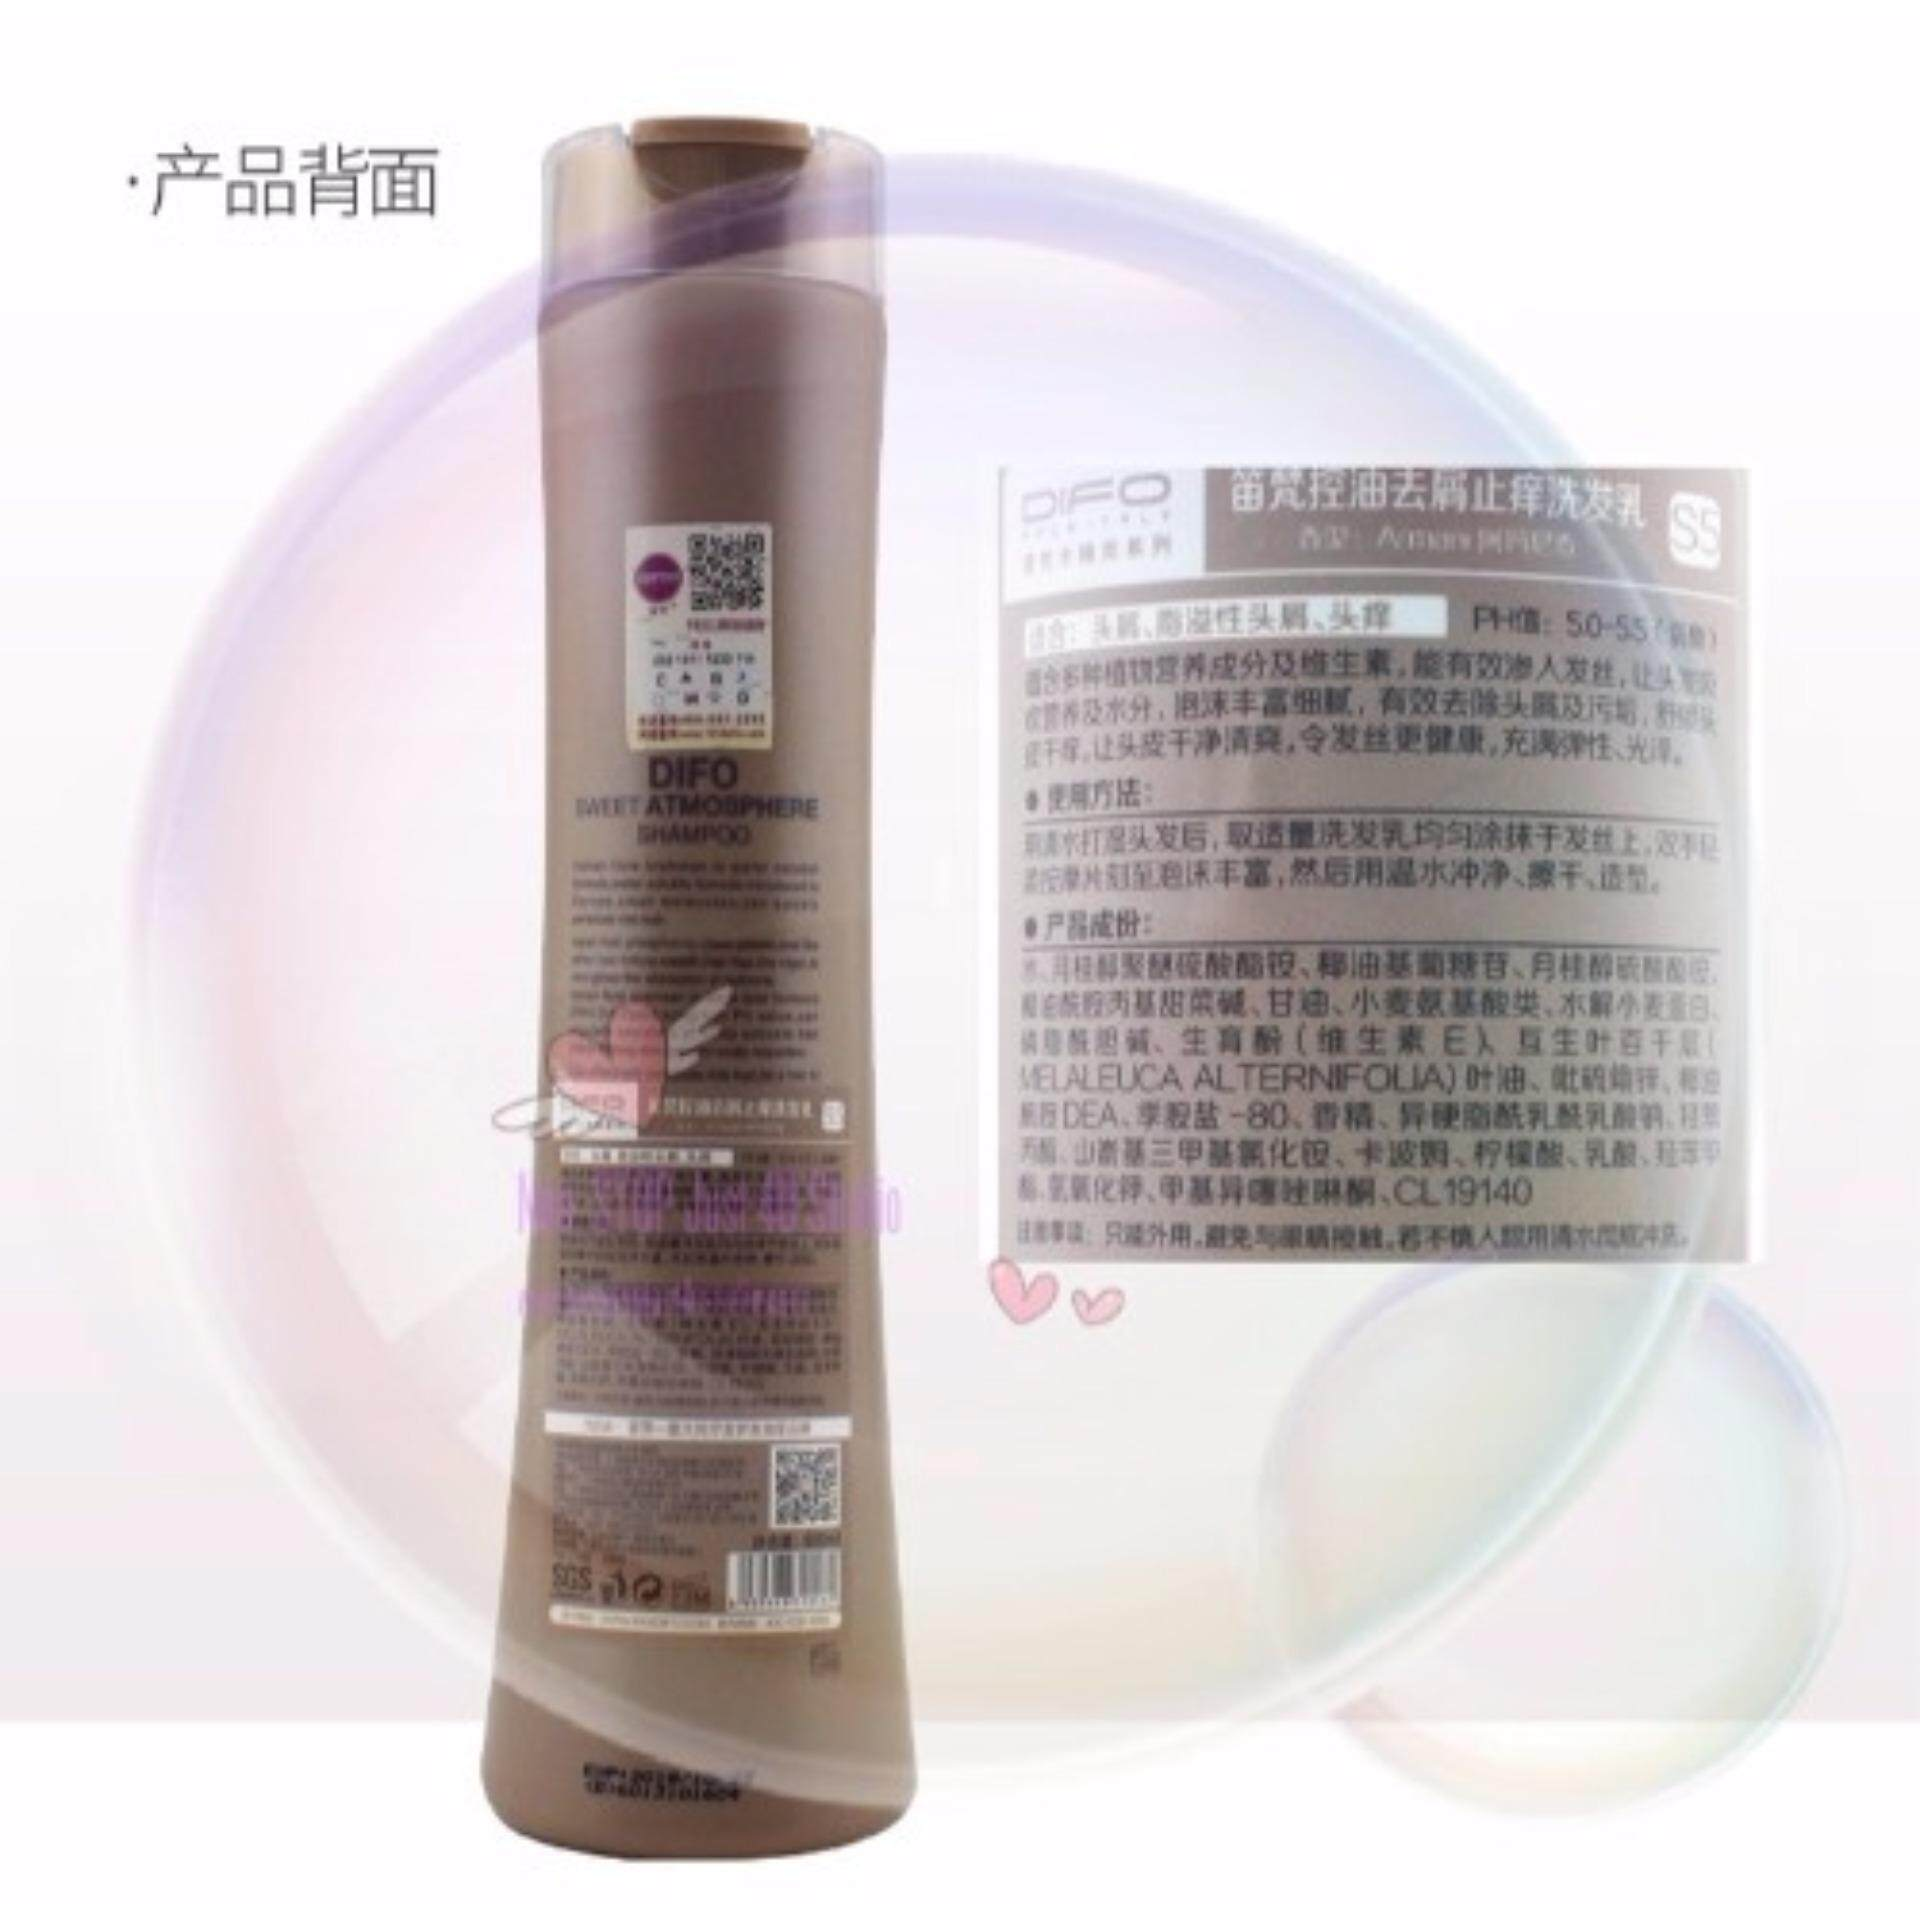 DIFO REGULATING SCALP CARE SHAMPOO WITH CHARMING FRAGRANCE FOR OILY HAIR